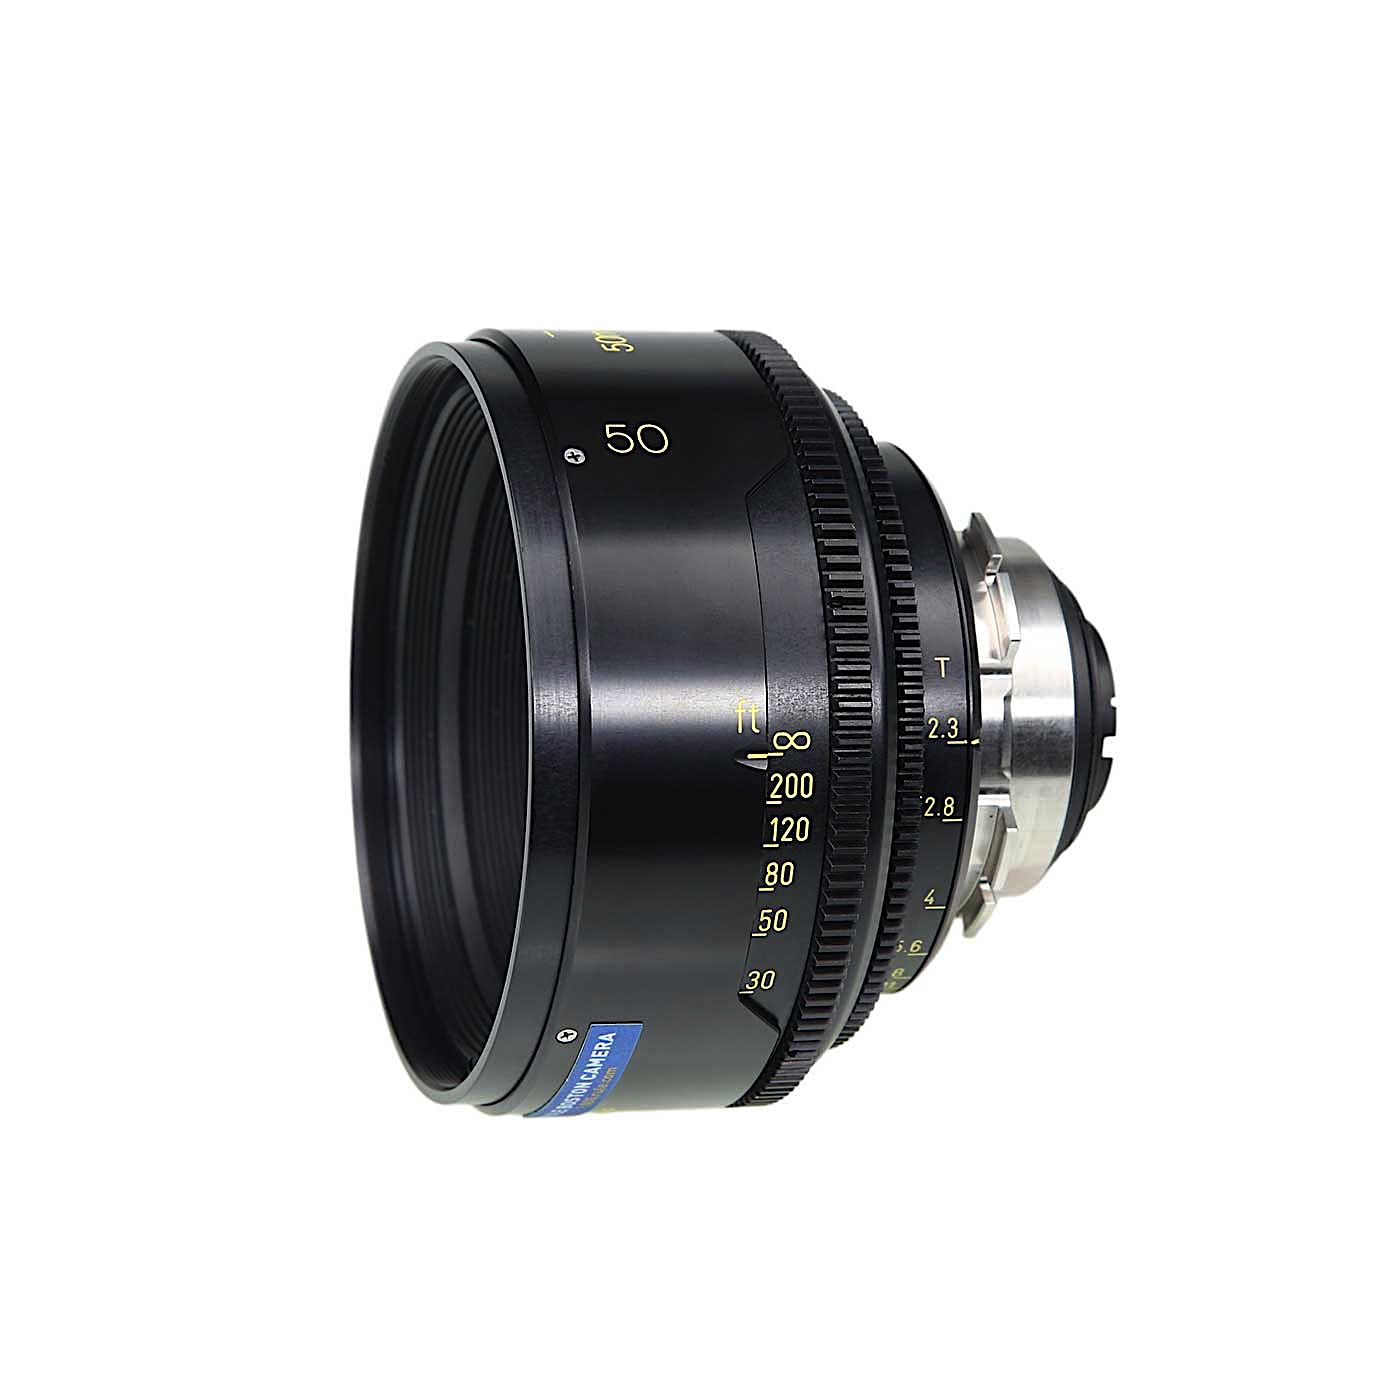 TLS Cooke 50mm Speed Panchro Prime Lens